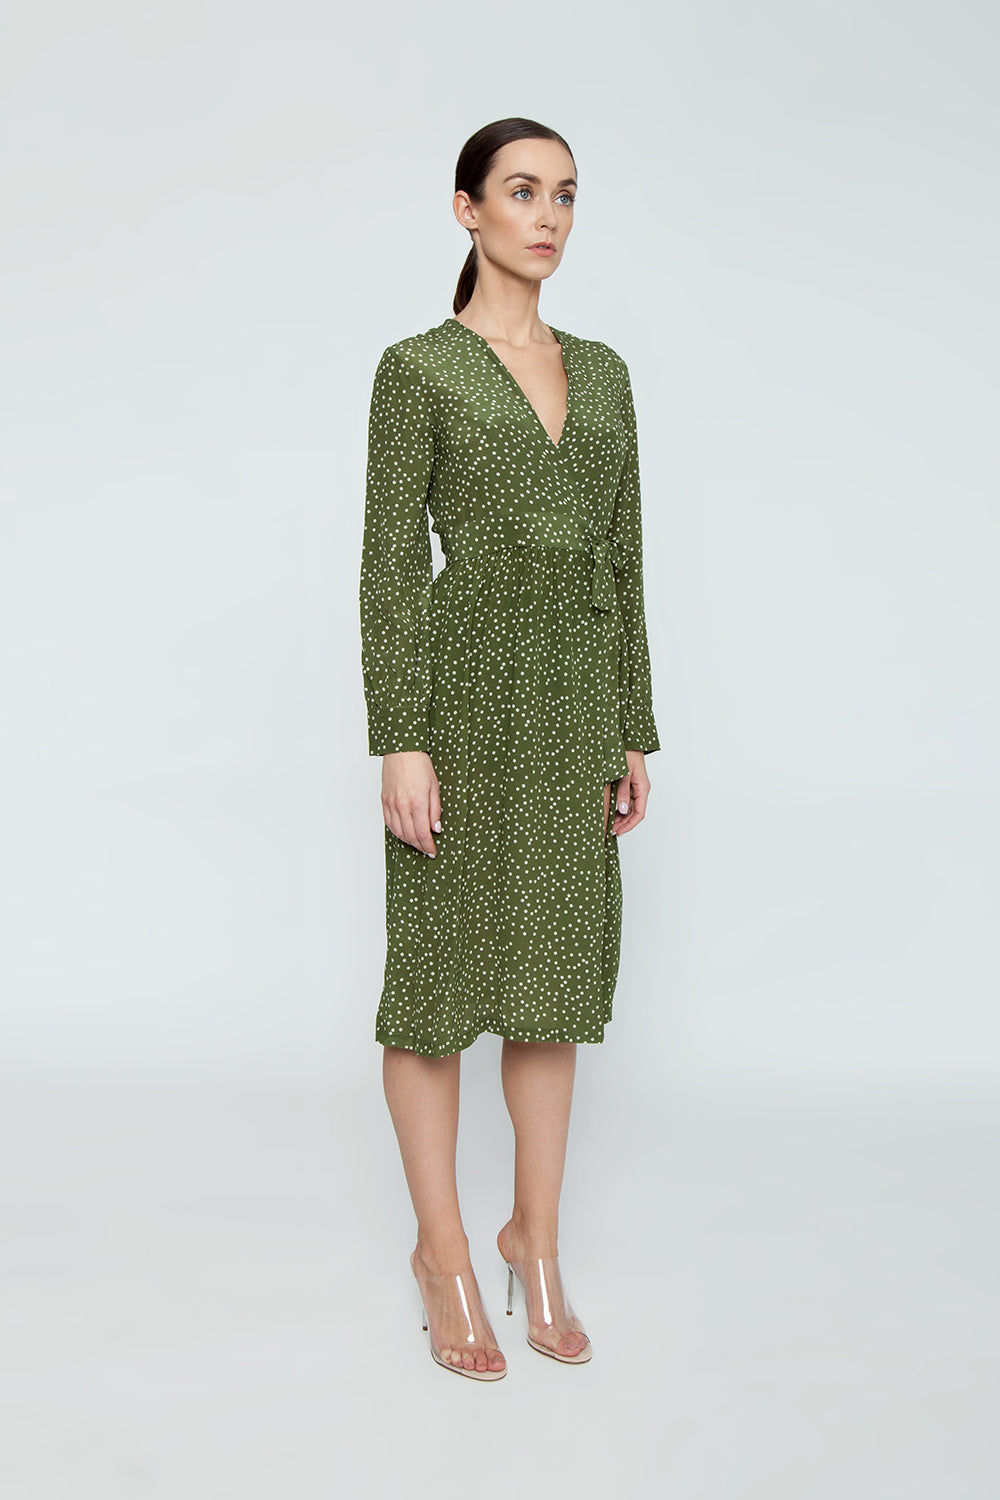 ADRIANA DEGREAS Silk Crepe De Chine Long Cross Front Dress With Shorts - Mille Punti Green Dot Print Dress | Mille Punti Green Dot Print| Adriana Degreas Silk Crepe De Chine Long Cross Front Dress With Shorts - Mille Punti Green Dot Print Long sleeve maxi dress  Wrap style  Shorts included Side View